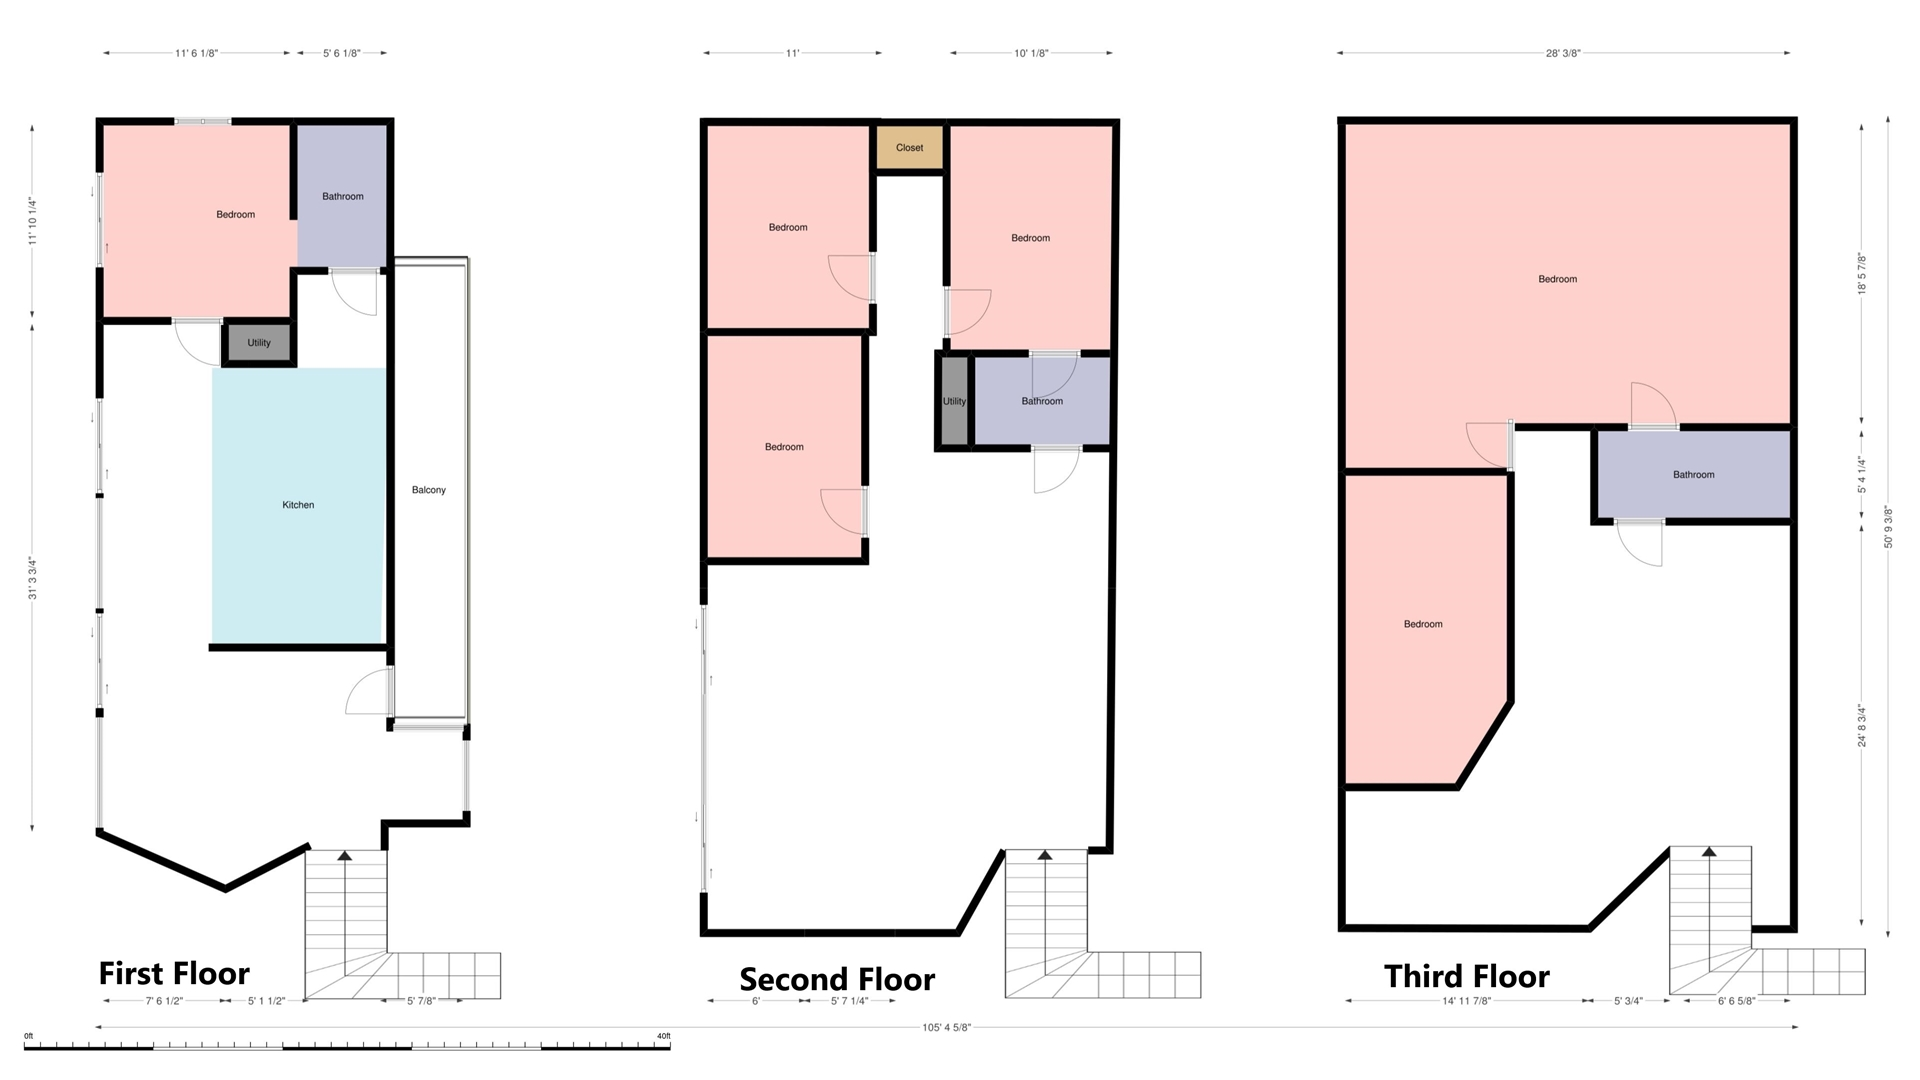 Floor Plan for Vaca Blanca - Large waterfront home, Located on Vaca Cut with Private Pool and Dock! PLR2017-00055